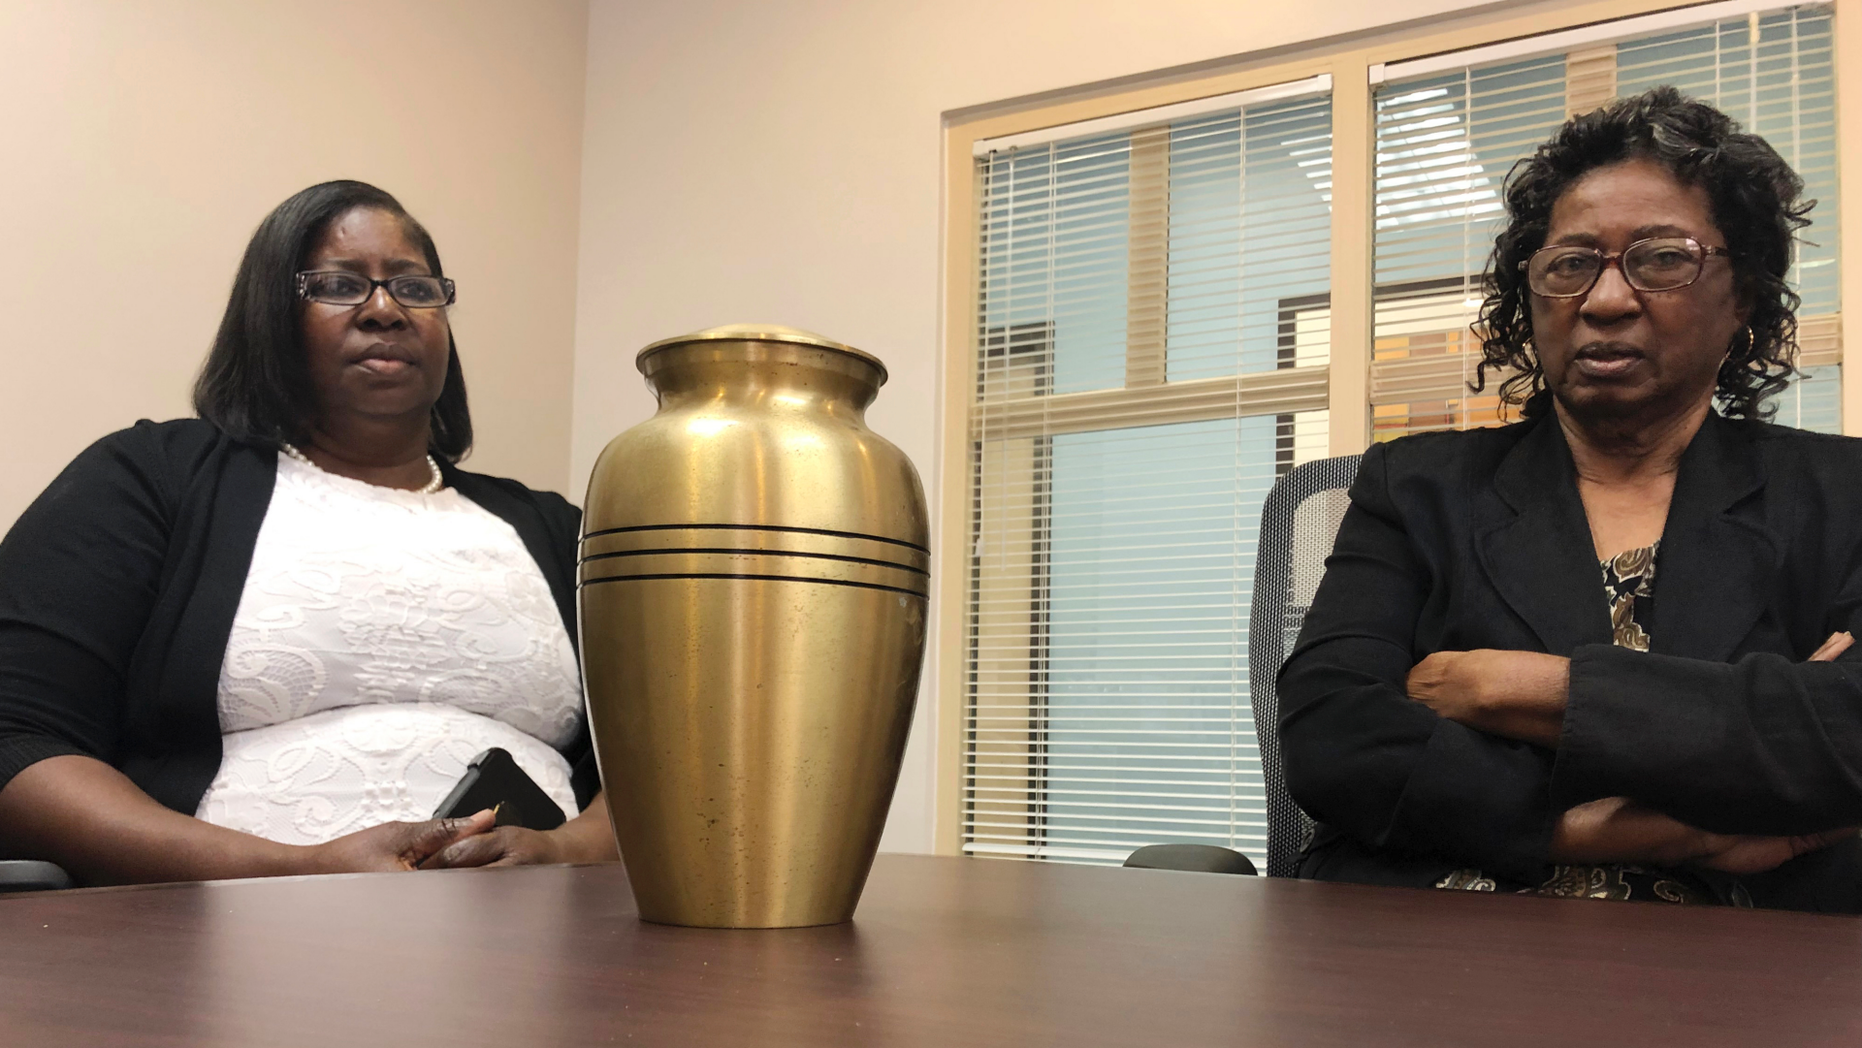 Corene Nero, right, and her daughter Gloria Rolle speak at their attorneys office next to an urn with cremated remains, in Boca Raton, Fla., Tuesday, April 16, 2019. Robert Nero Sr., passed away in 2013 and was cremated by Taylor Smith funeral home. In March, West Palm Beach police Department found a box with Robert Nero's name on it filled with ashes. Now the family is demanding answers from the funeral home and want to return the remains they have to the right family. (AP Photo/Josh Repogle)